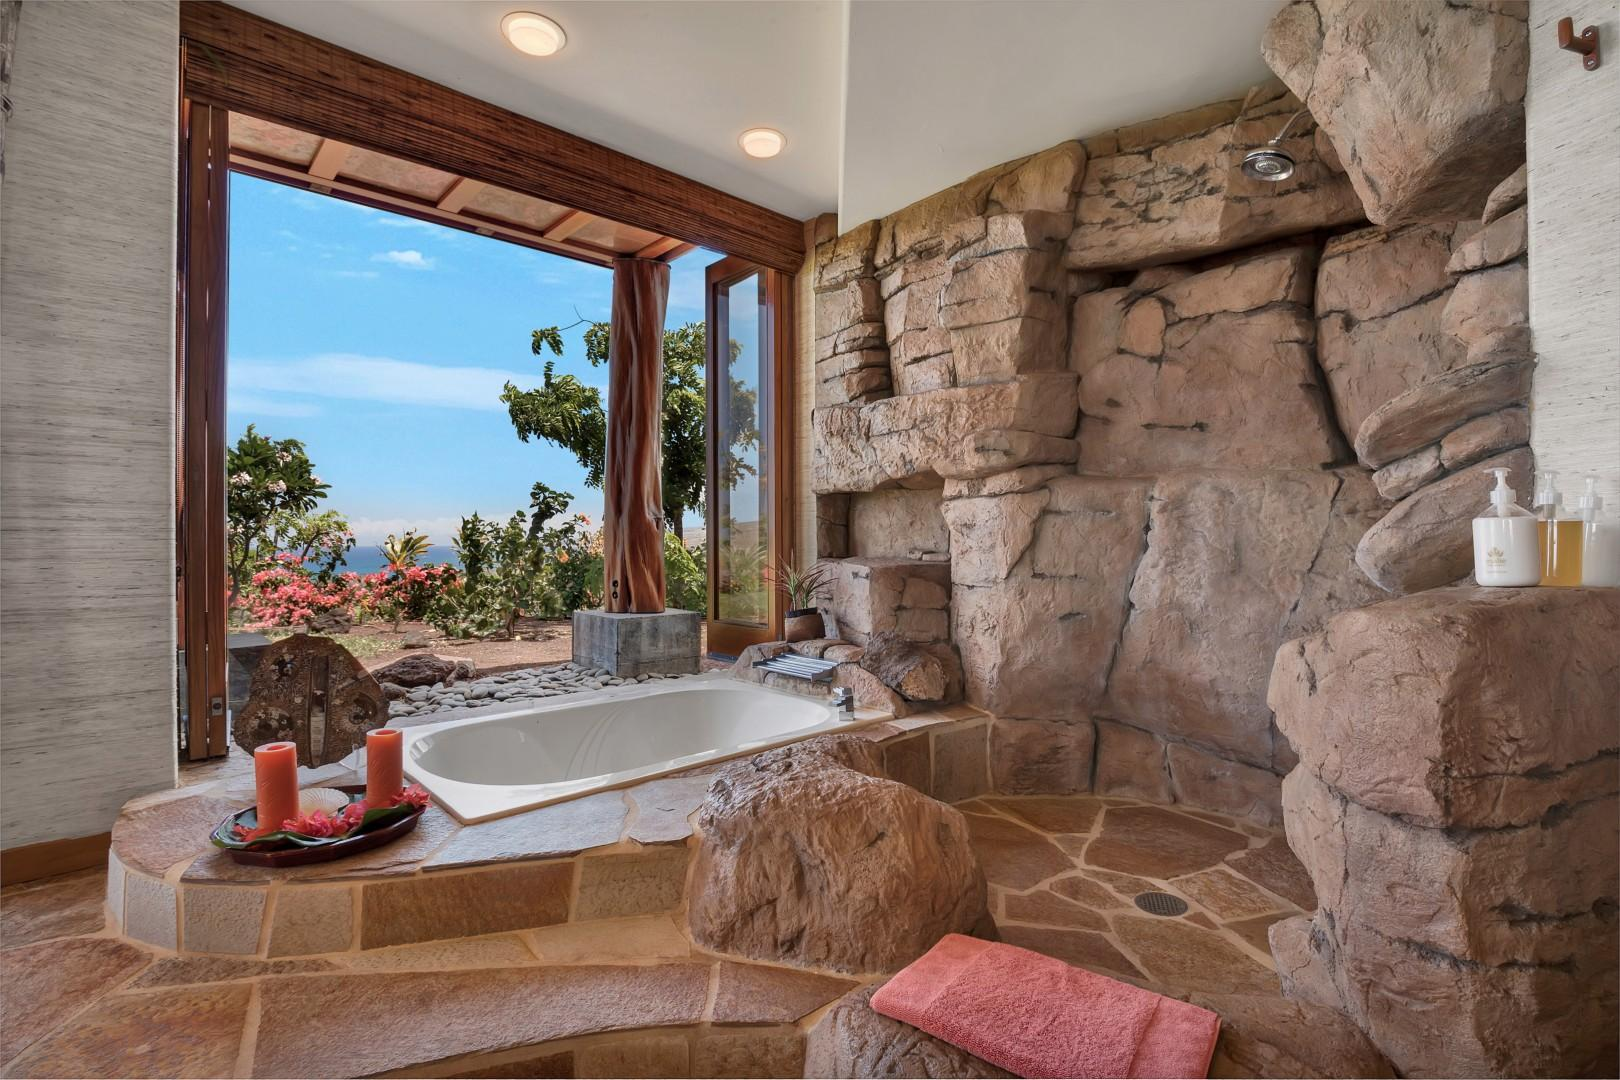 Retreat suite bath with ocean-view soaking tub and walk-in rock shower.